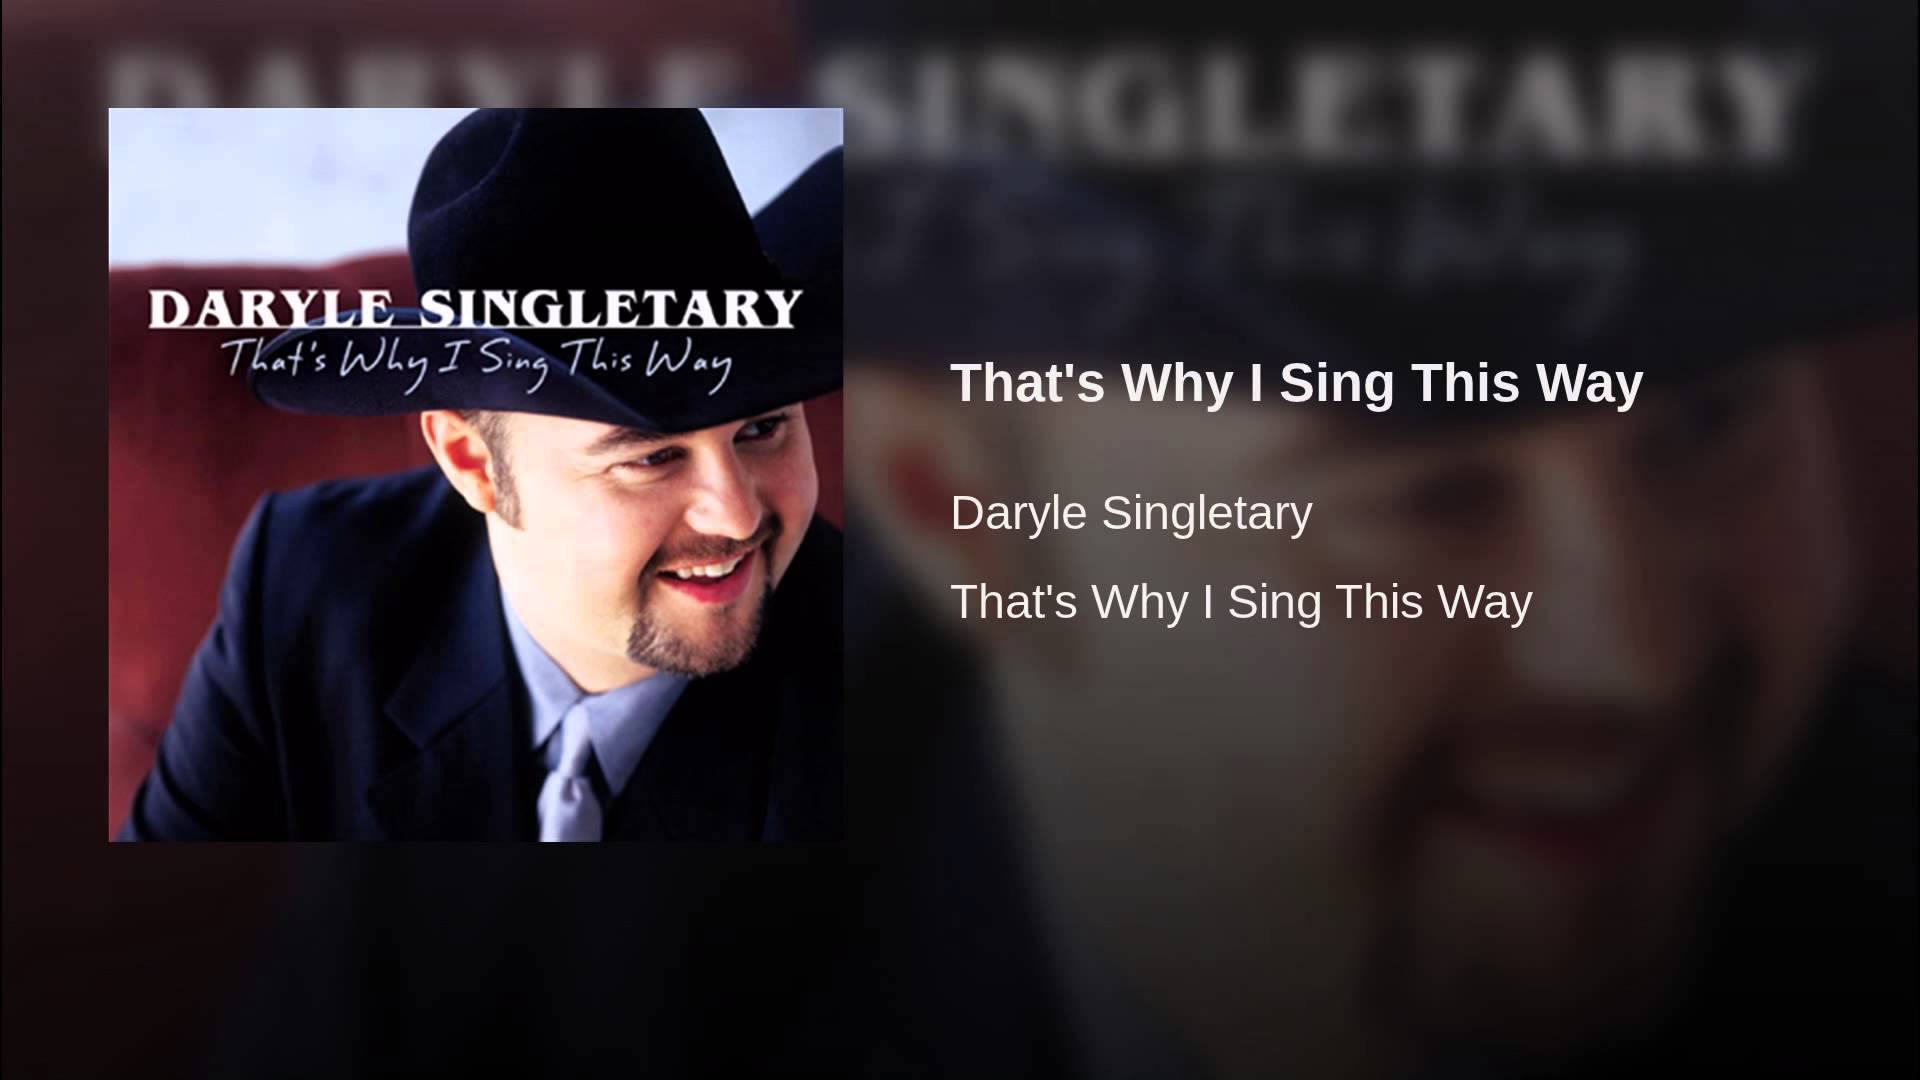 That's Why I Sing This Way - YouTube